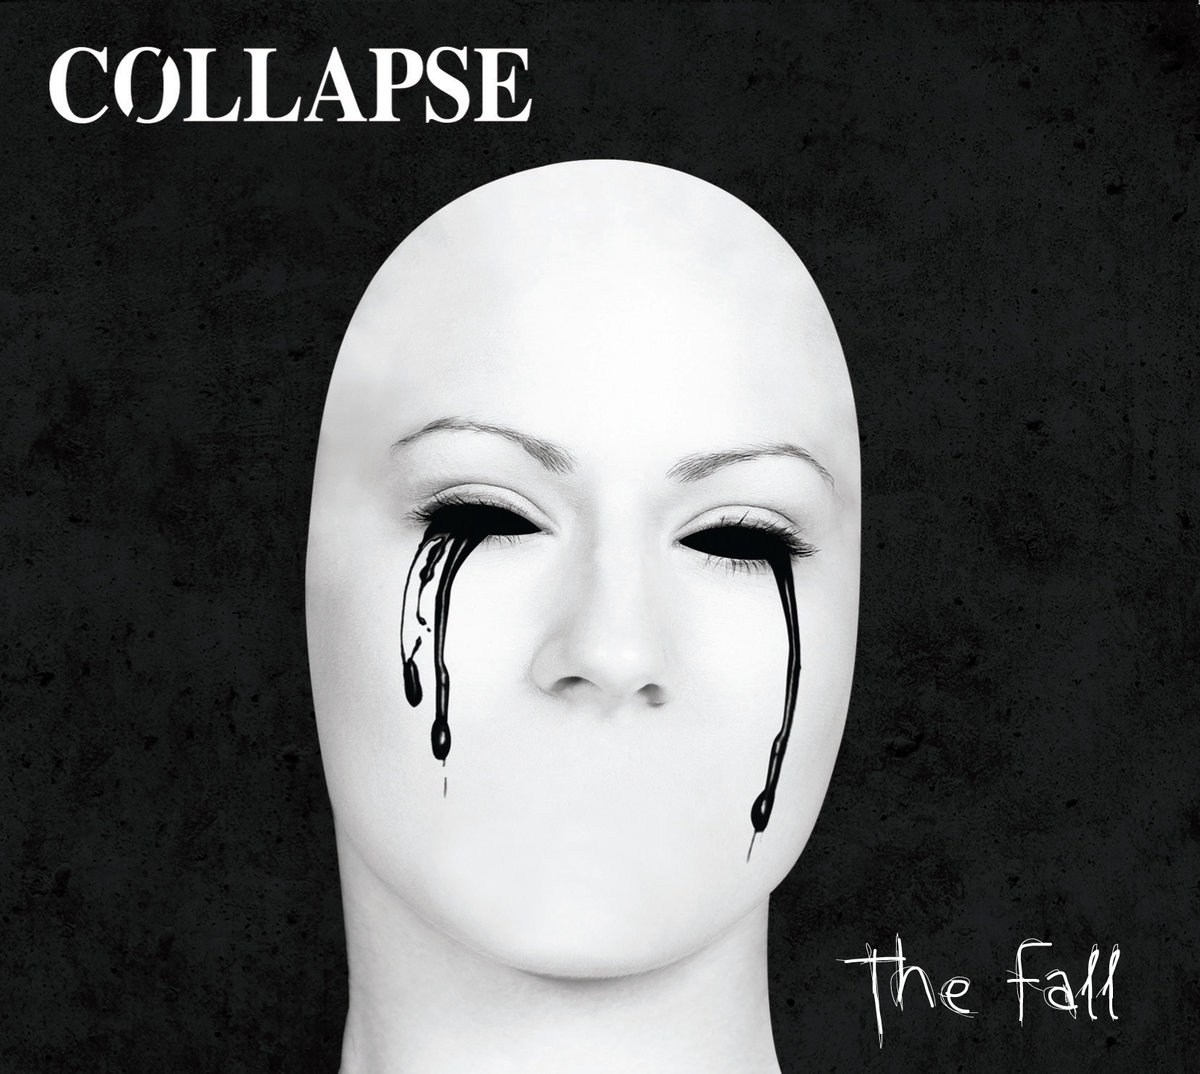 Collapse: The Fall